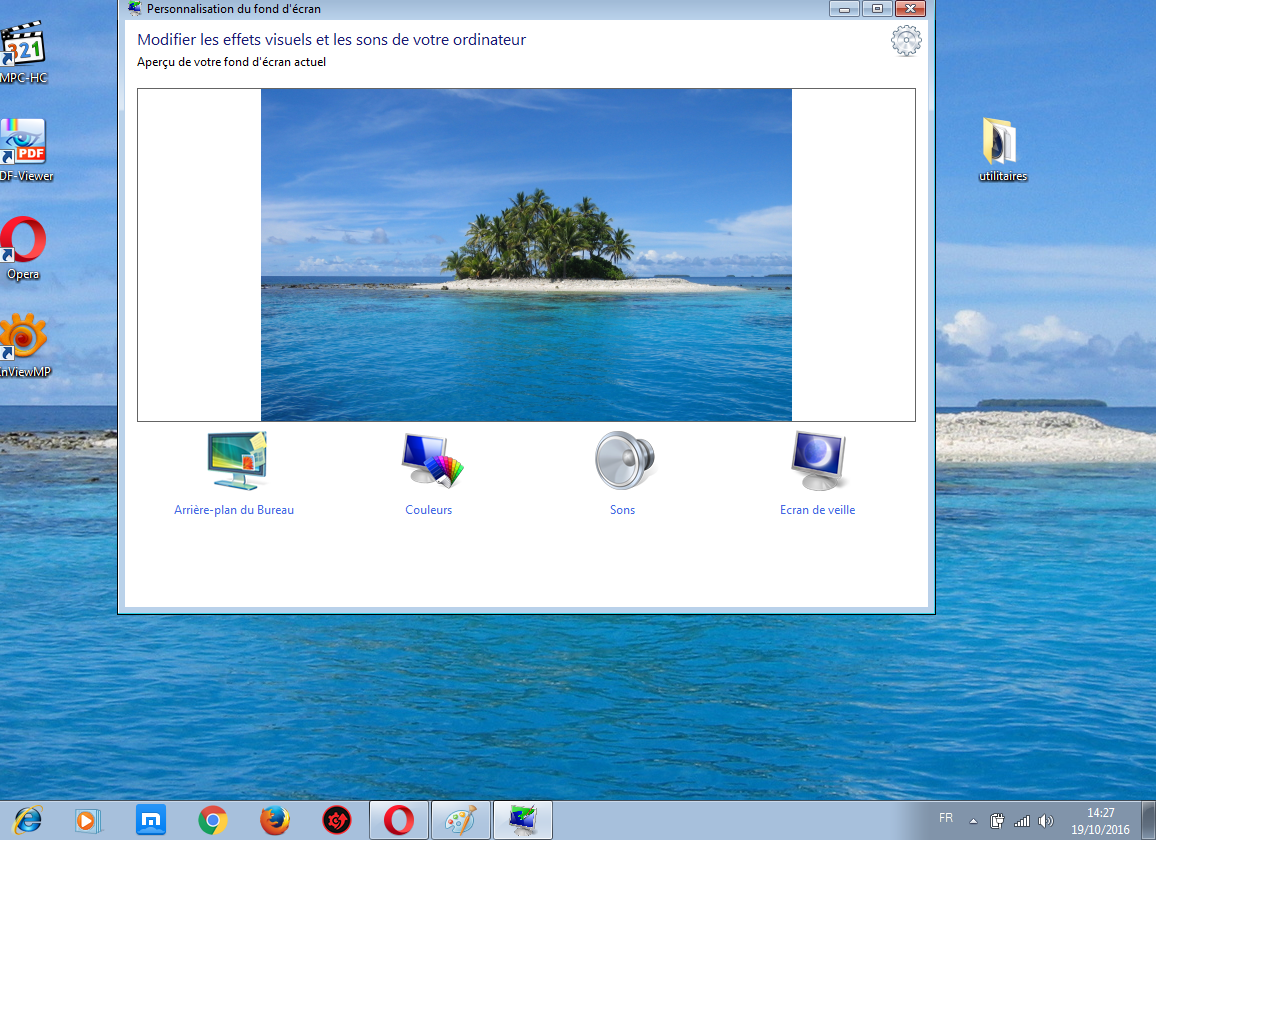 Personnaliser son bureau sous windows 7 starter avec starterbackground papy astuces informatique - Personnaliser son bureau windows 7 ...